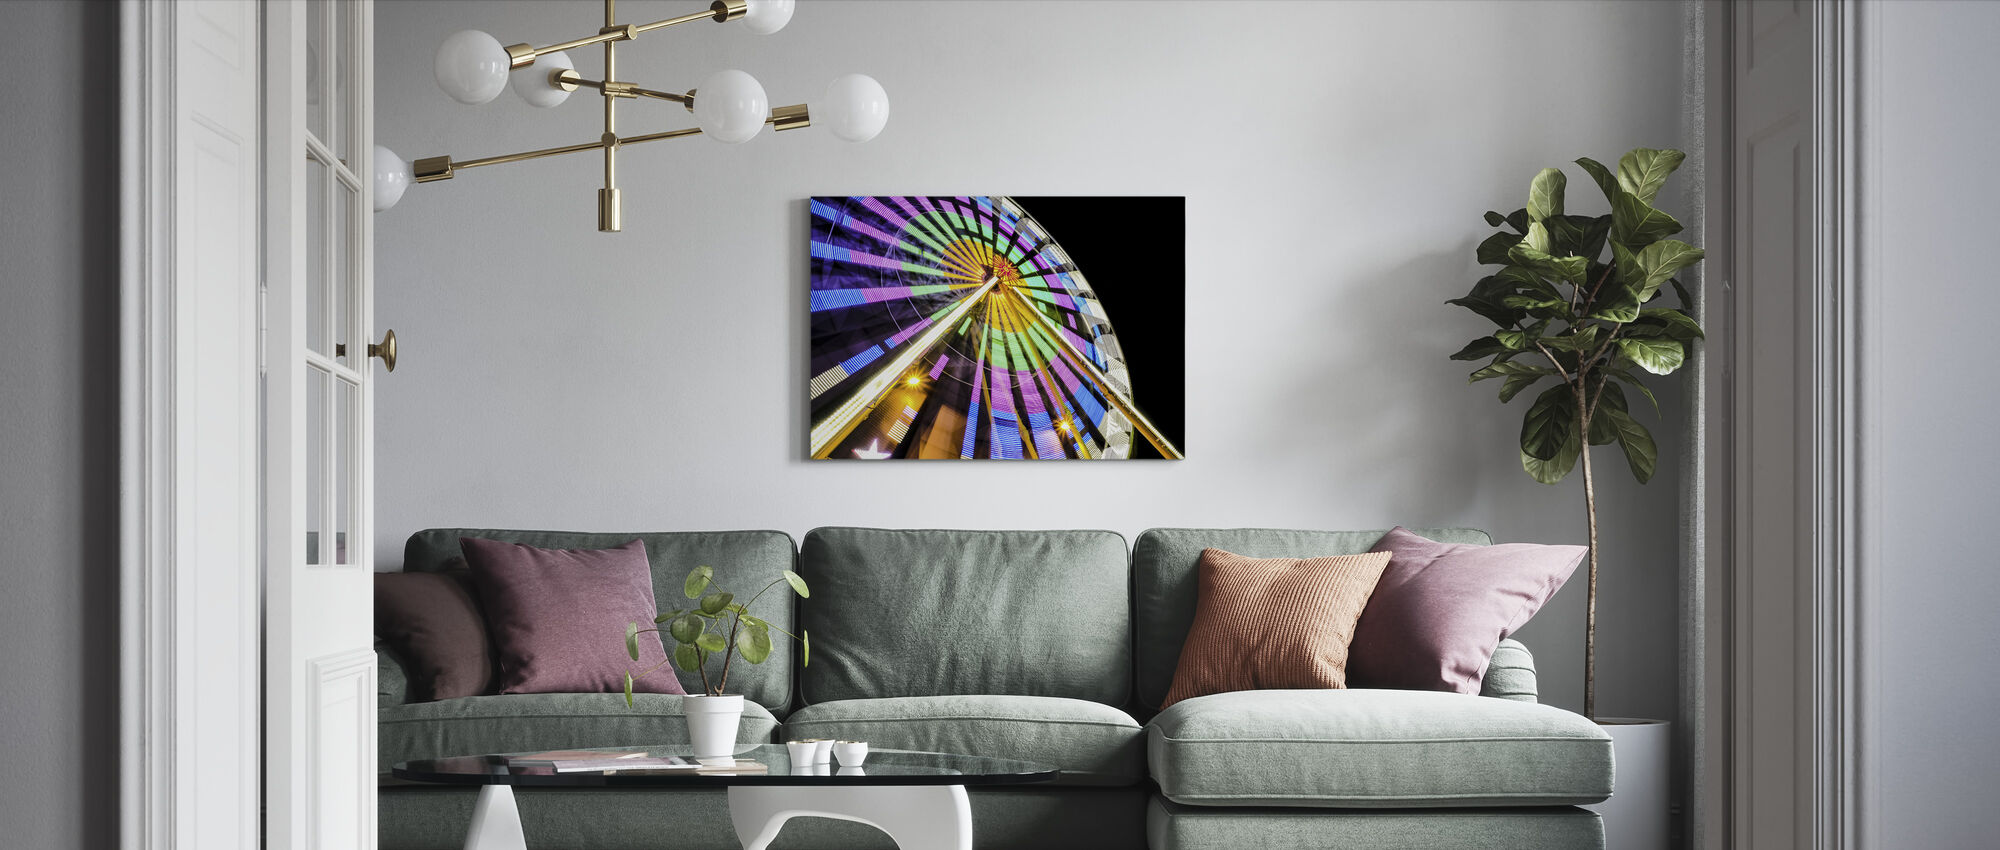 Rainbow Wheel - Canvas print - Living Room